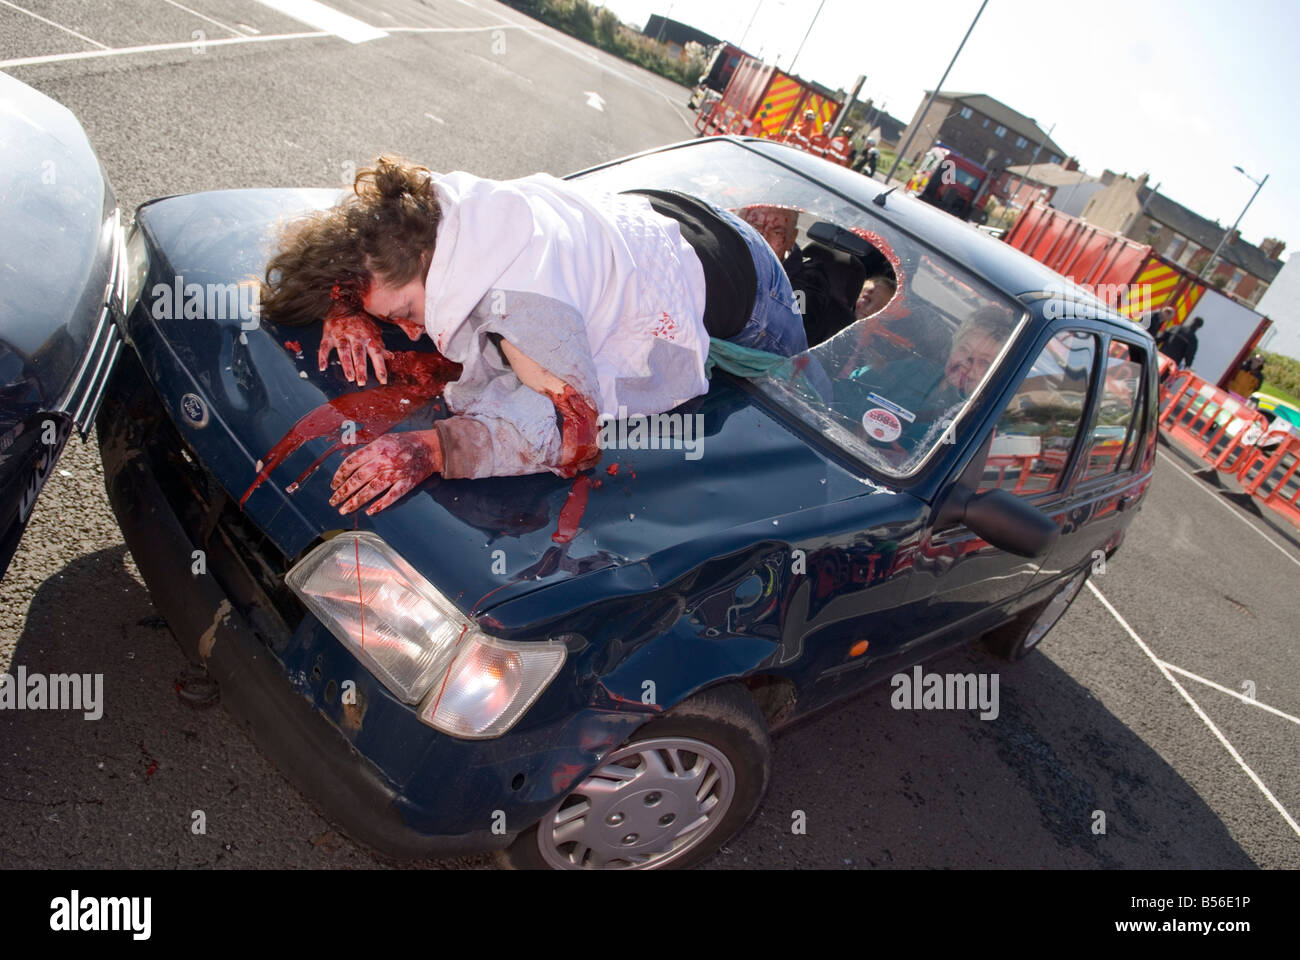 road traffic accidents Road traffic accidents are a public health issue and cost a lot to individuals,  families, communities and nations the estimated cost is around 1-2% of a  country's.